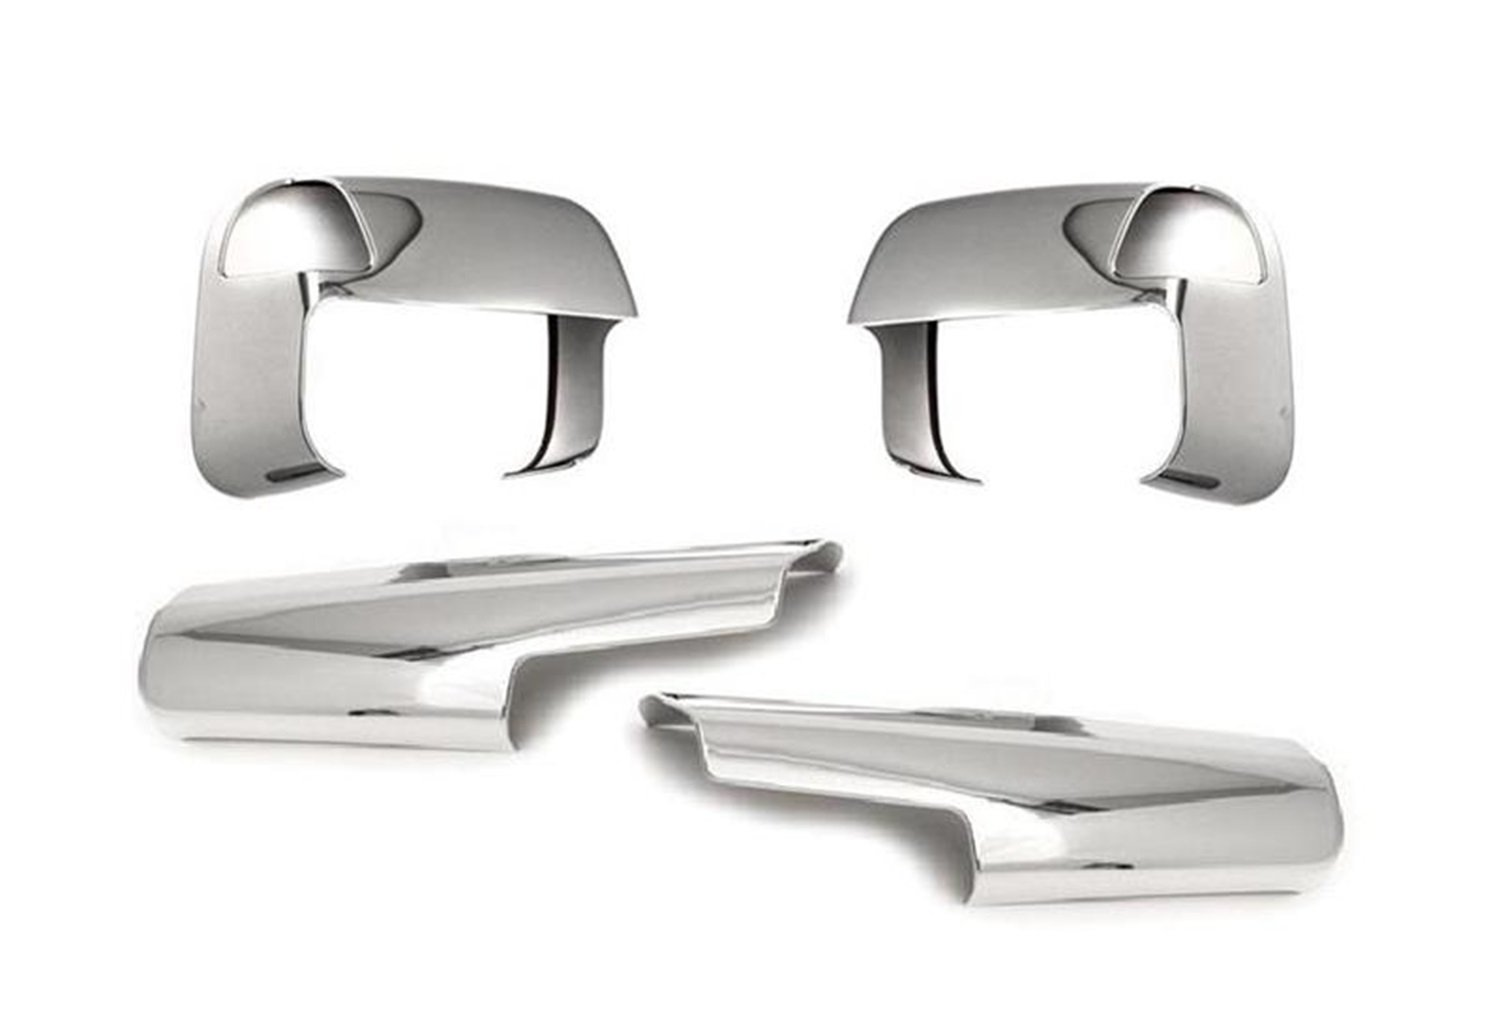 4 Piece Putco 400520 Chrome Overlay for Tow Mirror with Light